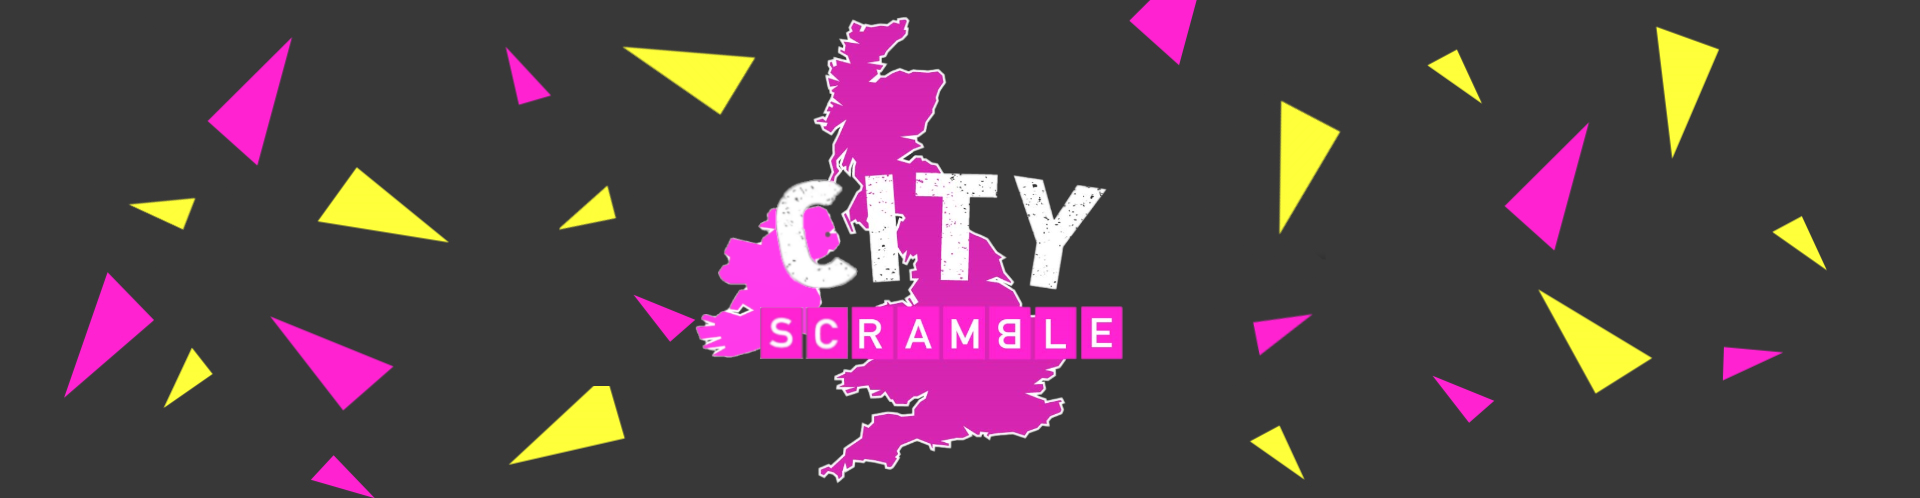 City Scramble UK